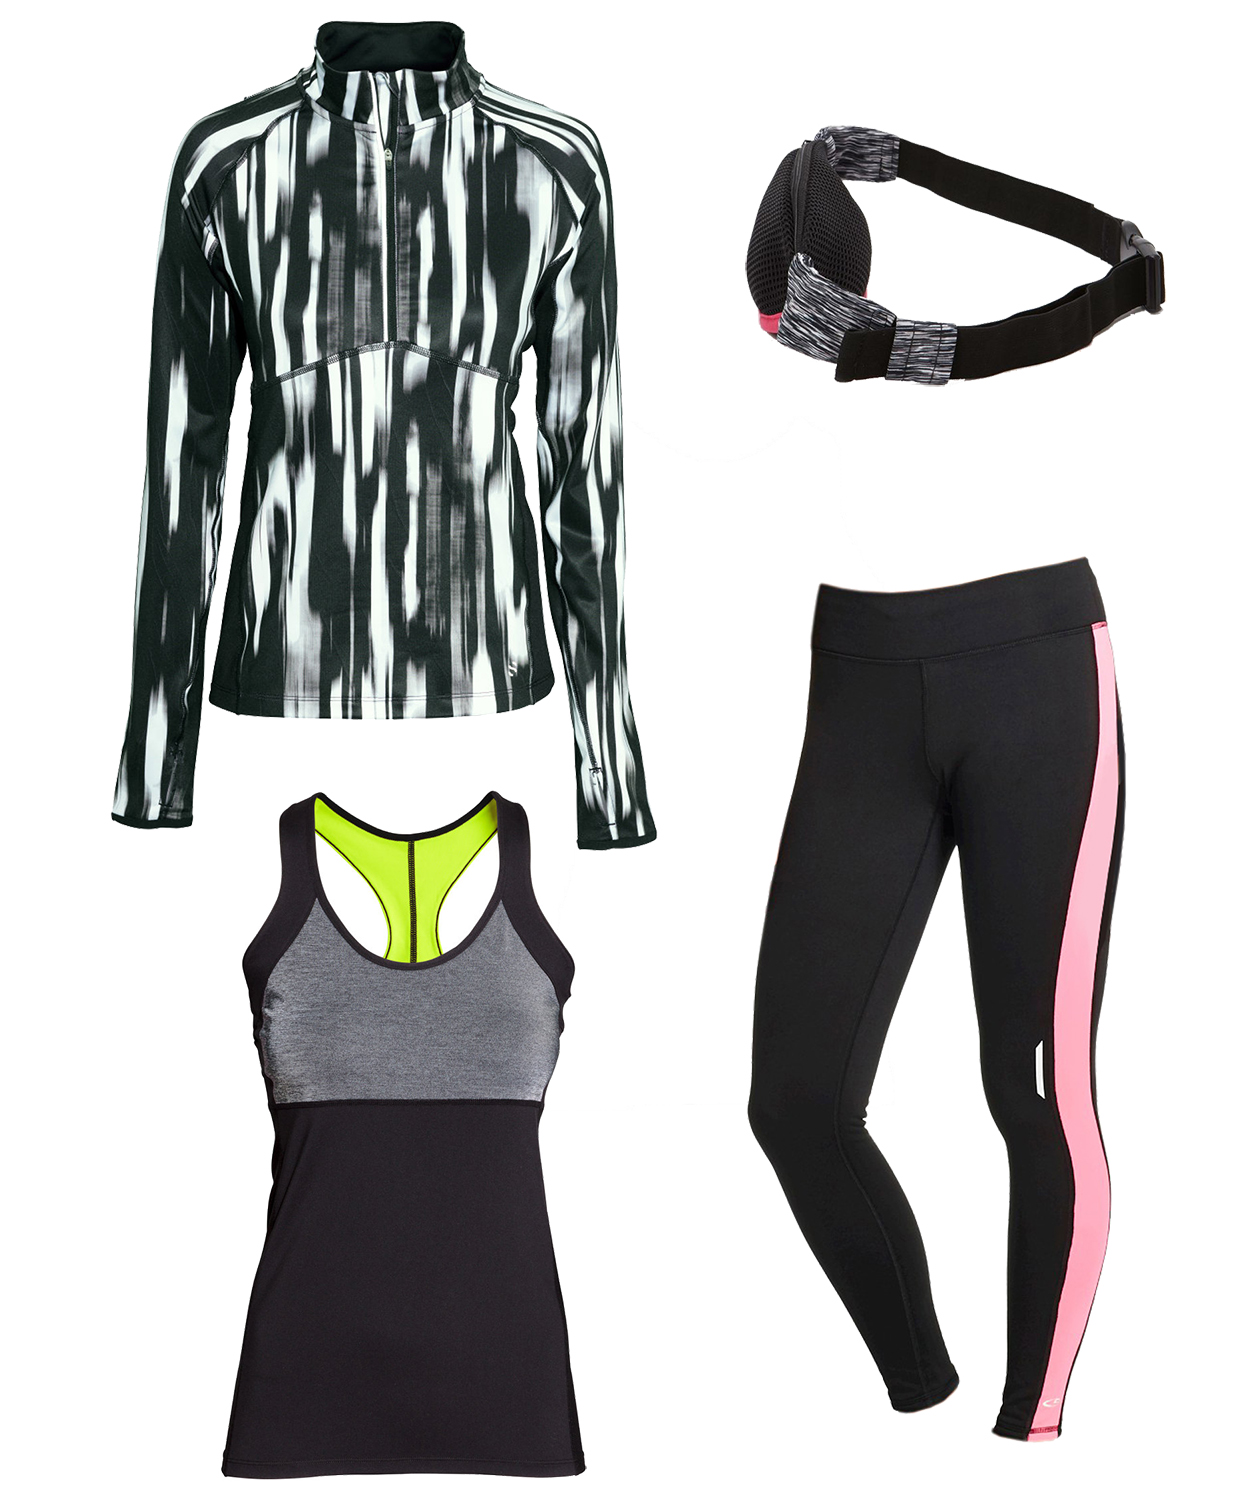 Colorblocked Runner workout outfit